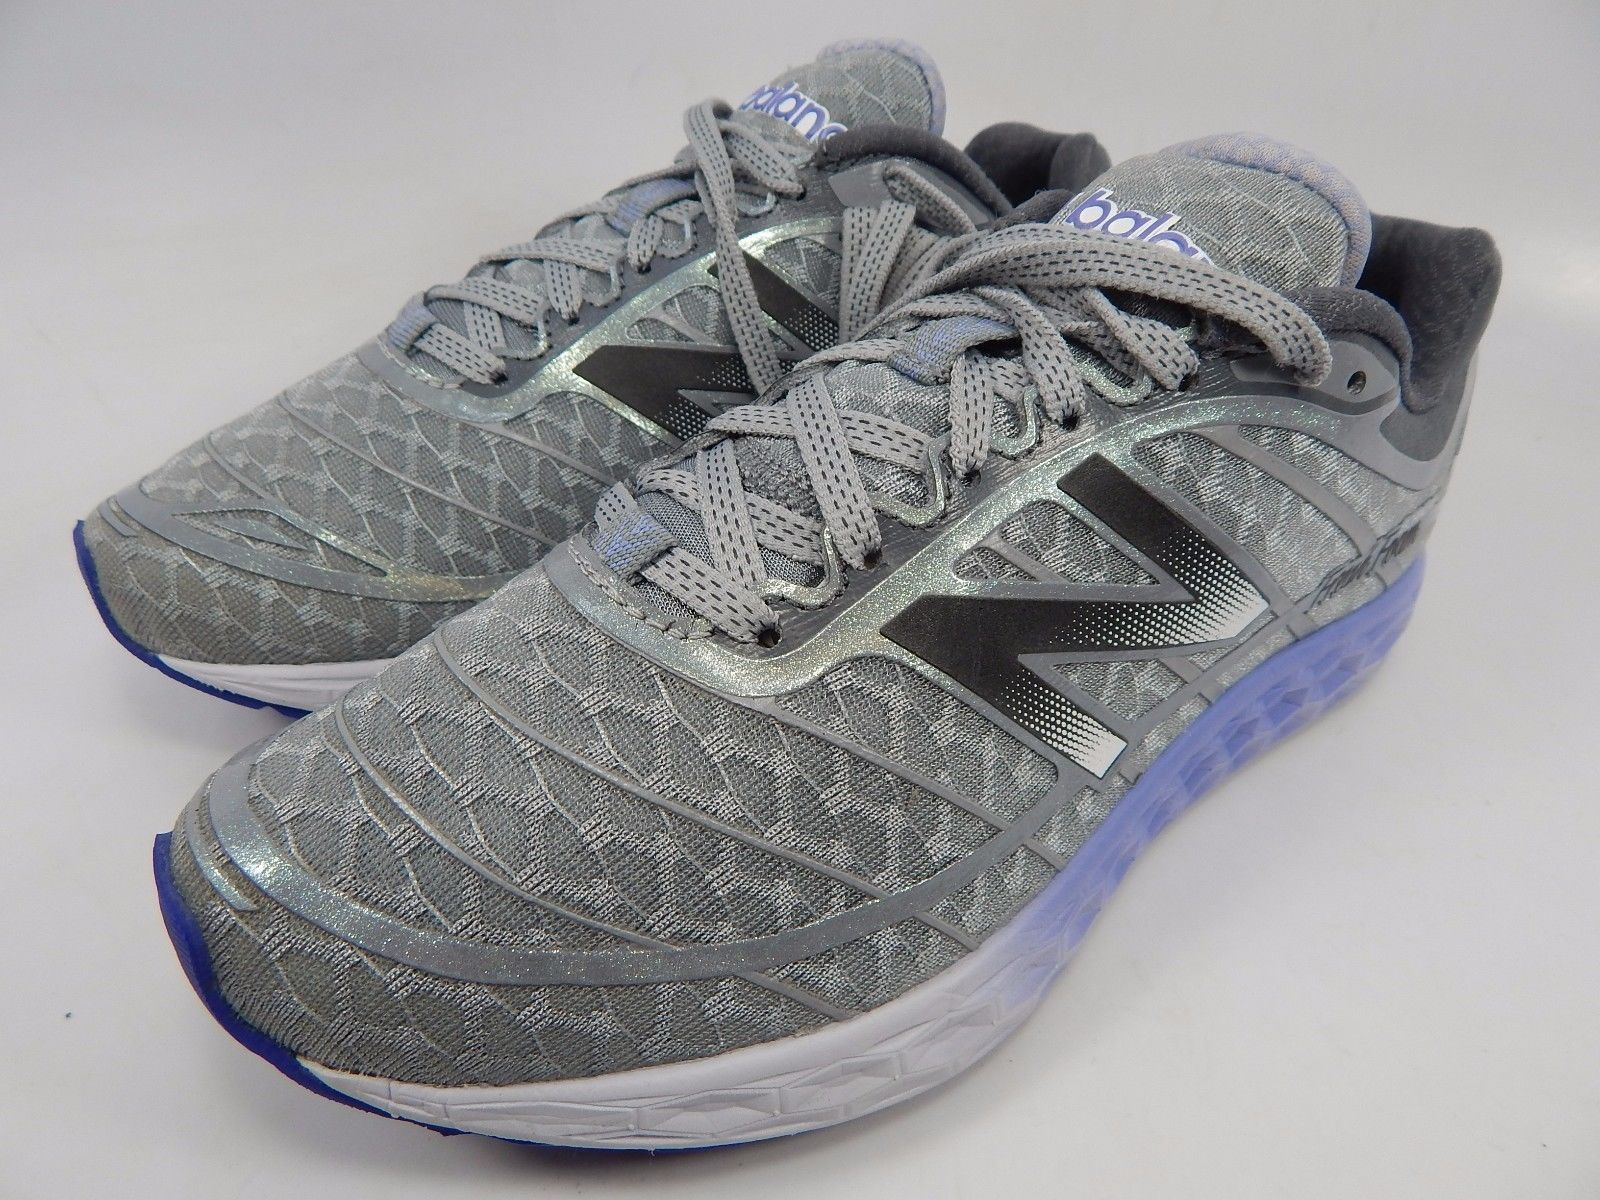 New Balance 980 v2 Fresh Foam Boracay Women's Shoes Size US 6.5 M (B) EU 37